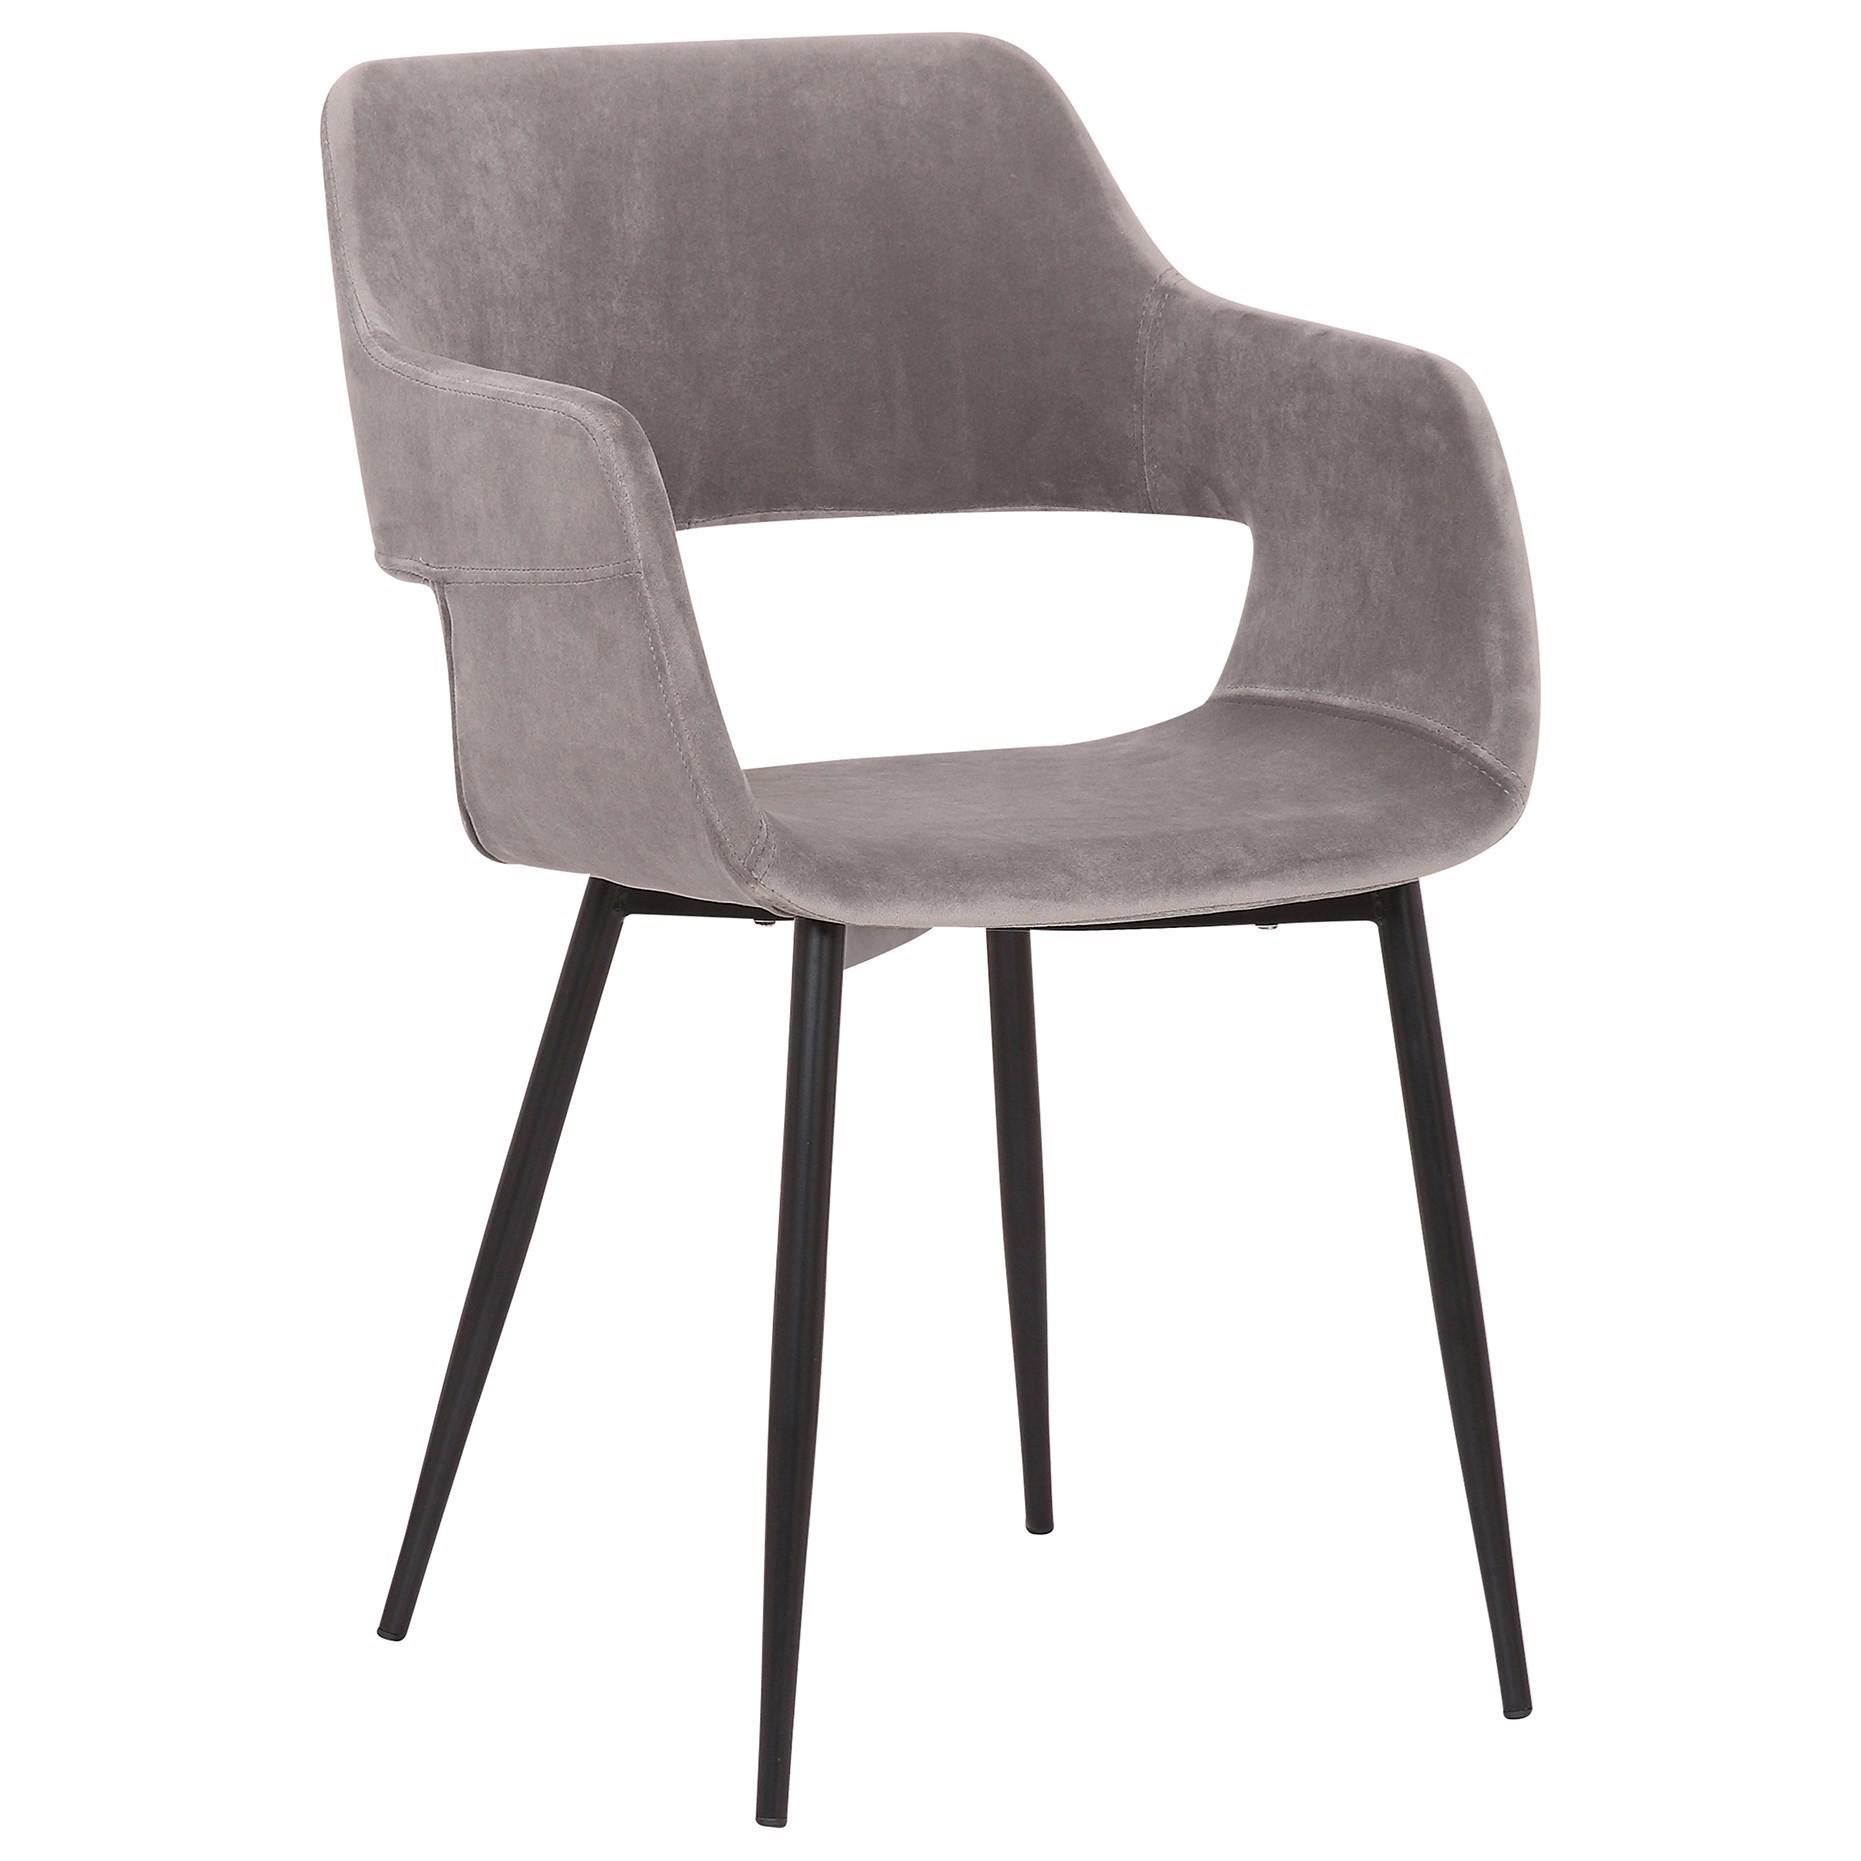 Ariana Mid-Century Grey Open Back Dining Chair by Armen Living at Fisher Home Furnishings